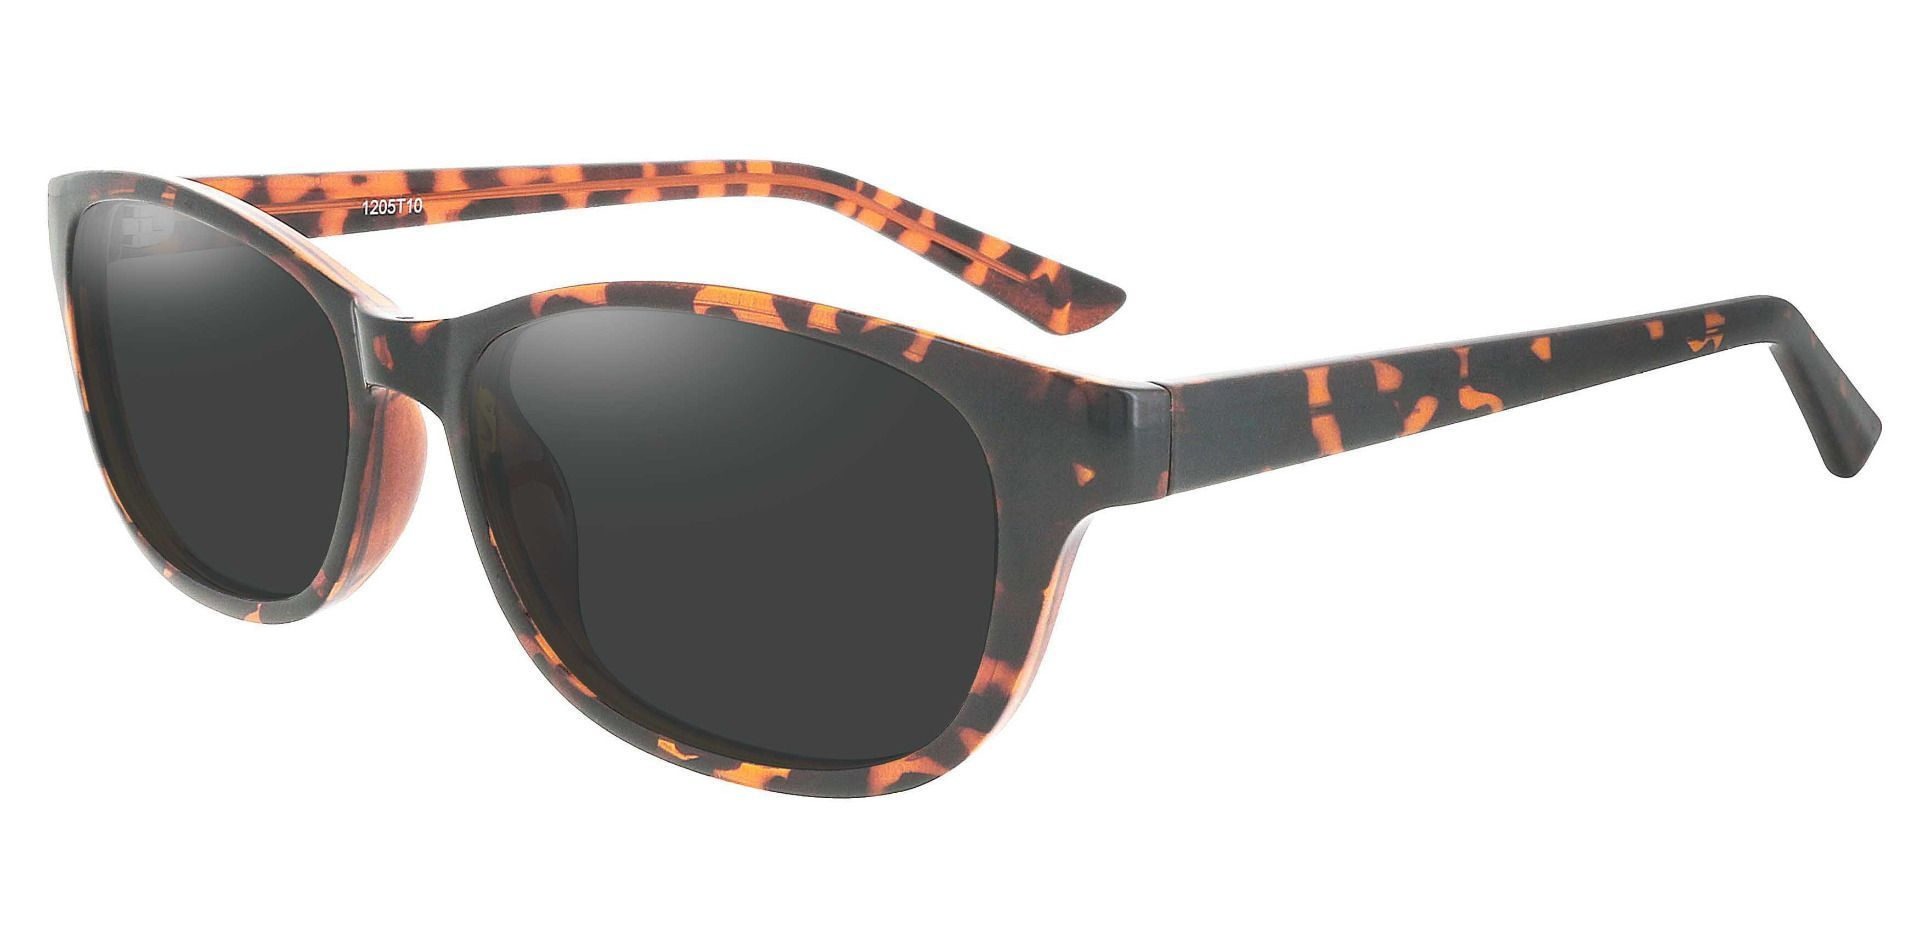 Reyna Classic Square Non-Rx Sunglasses - Tortoise Frame With Gray Lenses